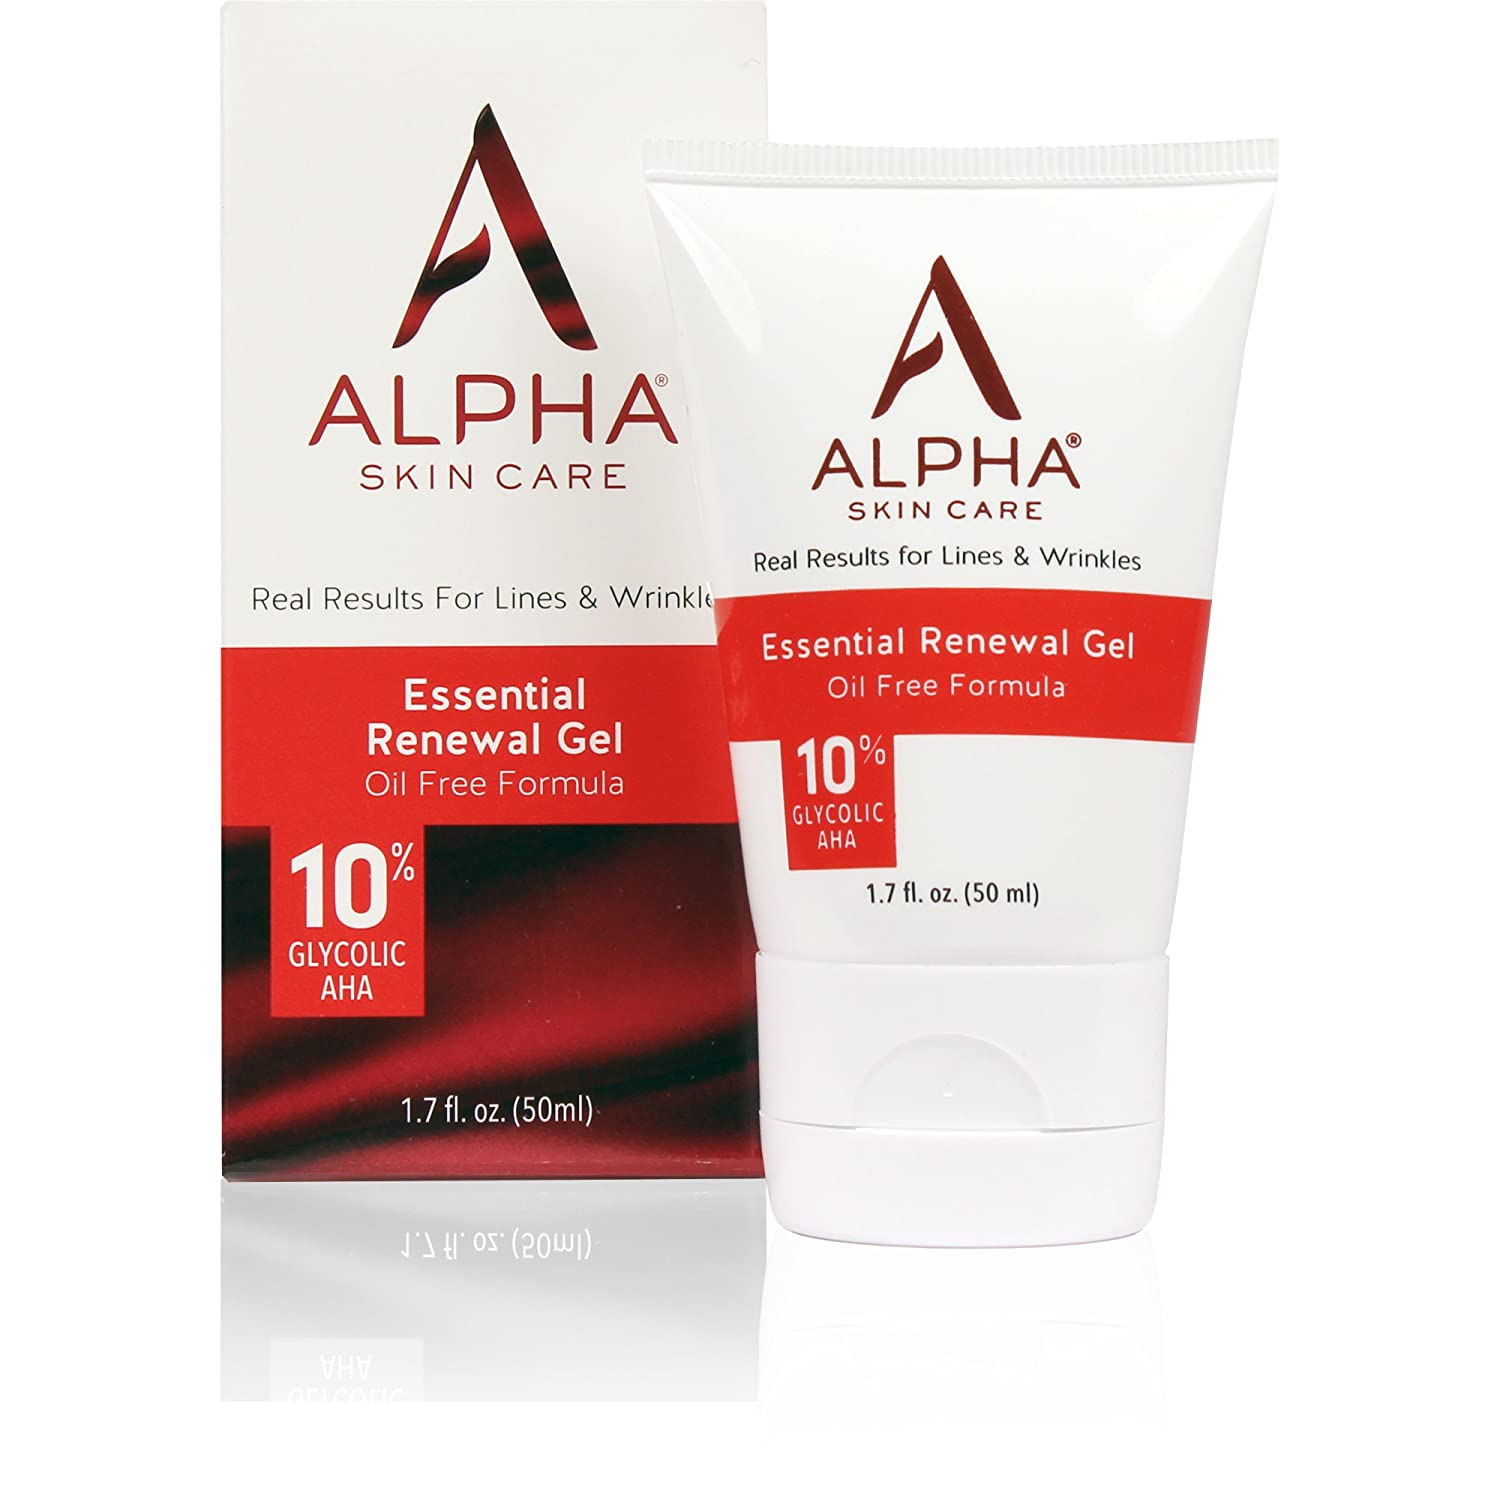 Alpha Skin Care Essential Renewal Gel | Anti-Aging Formula | 10% Glycolic Alpha Hydroxy Acid (AHA) | Reduces the Appearance of Lines & Wrinkles | Oily & Breakout Prone Skin | 1.7 Oz